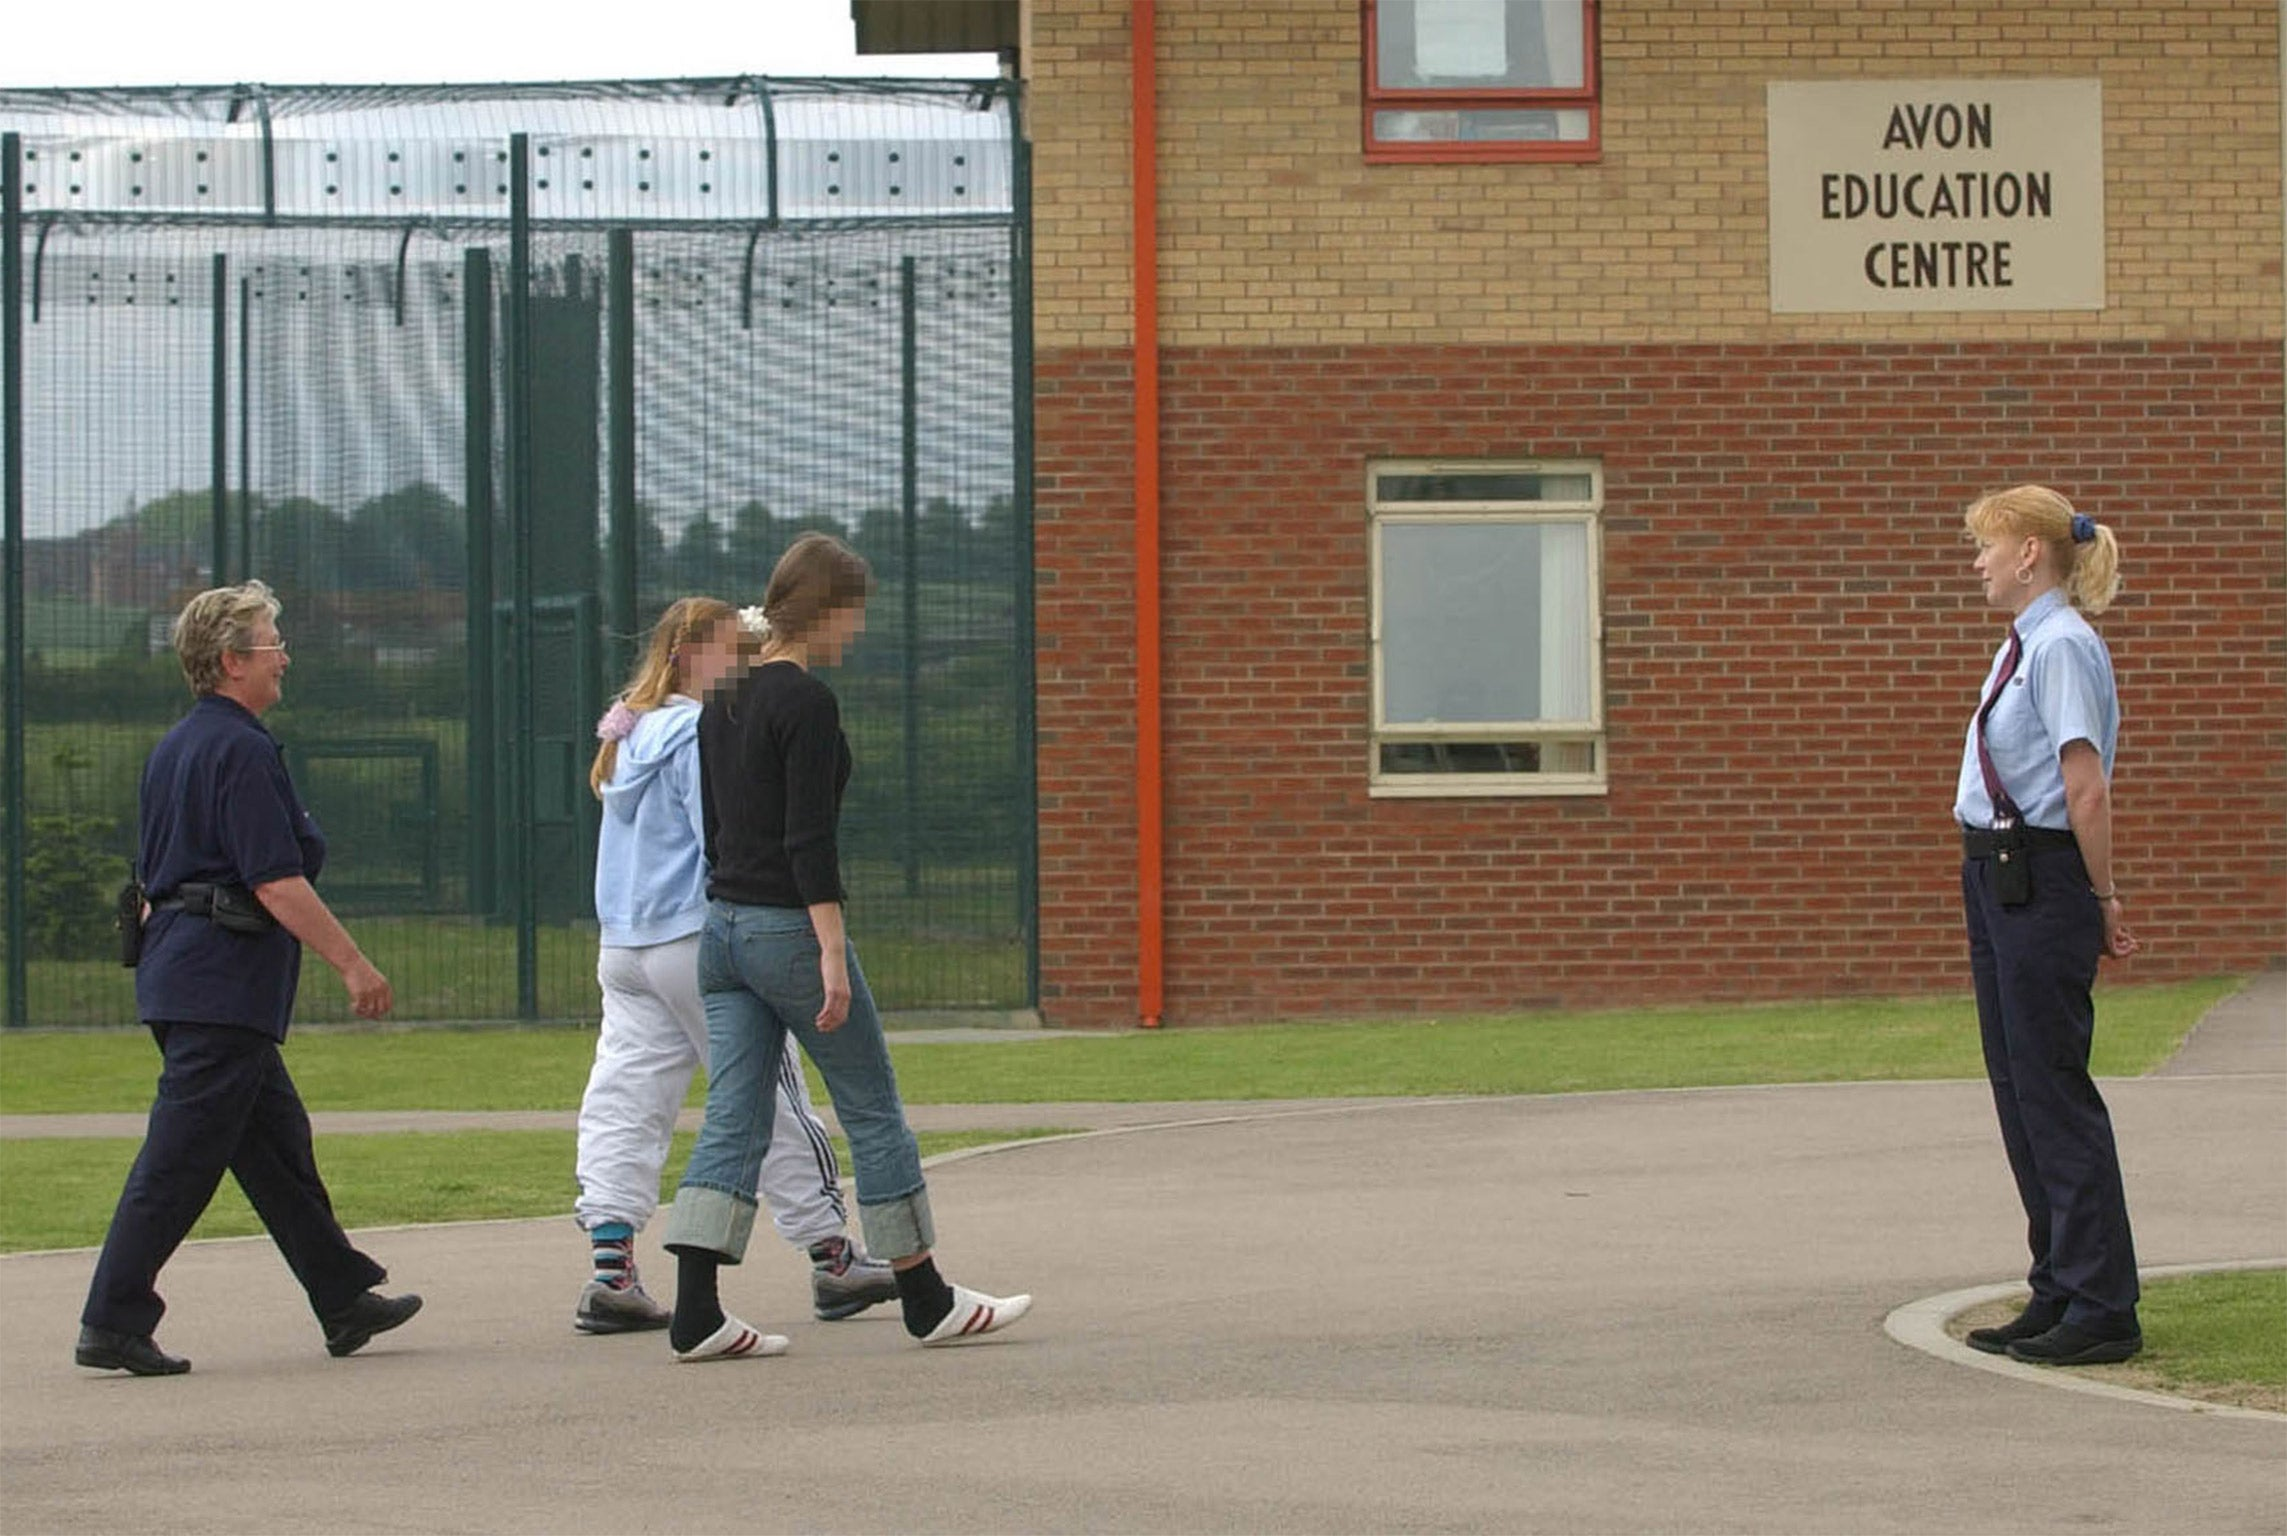 Rainsbrook G4S Youth Prison The History Of A Ghetto -6988